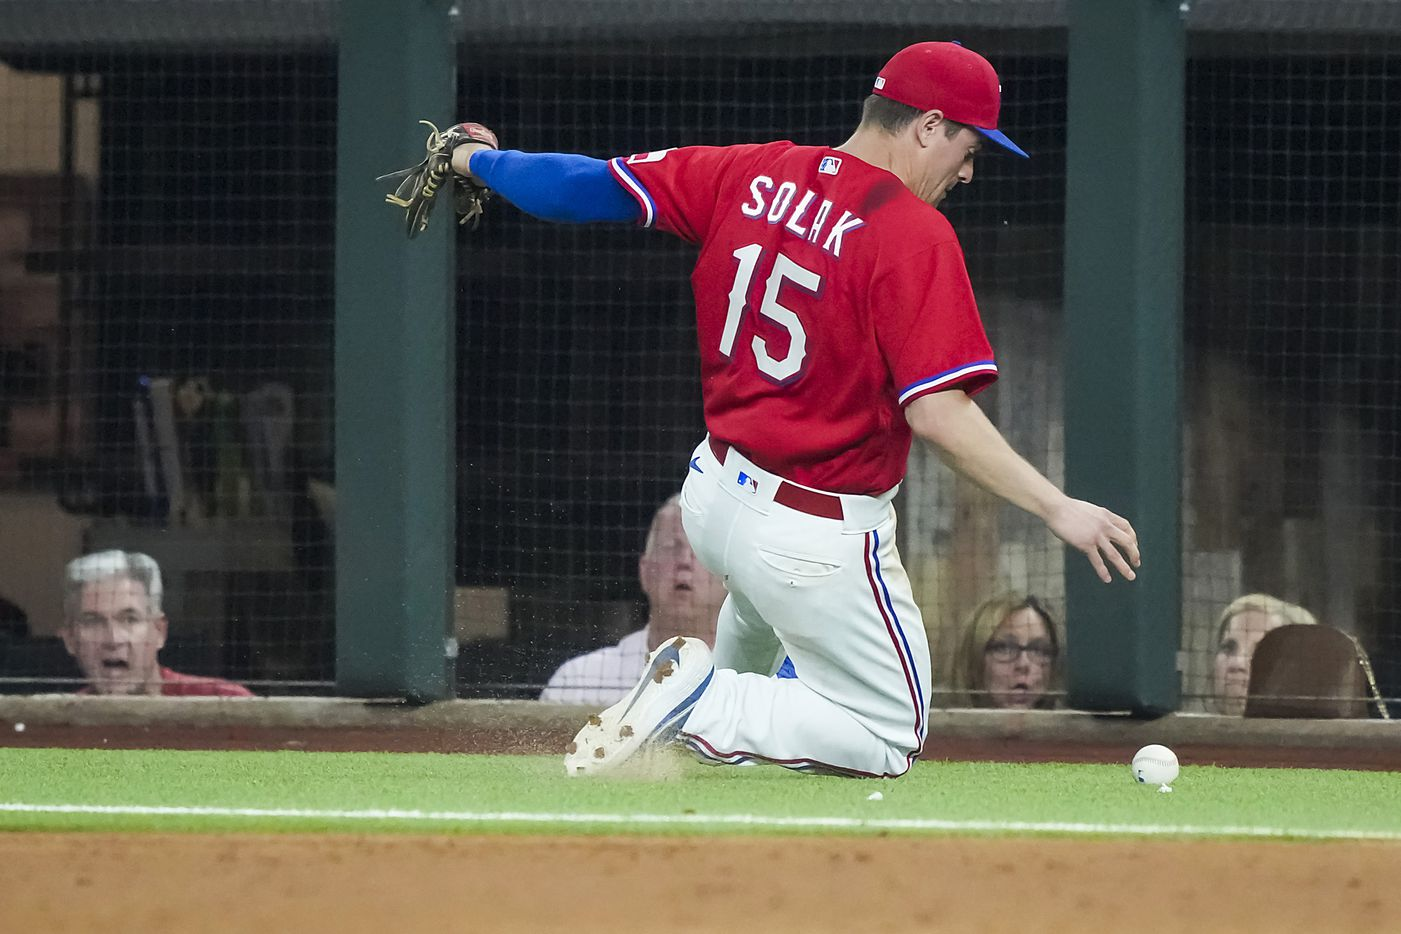 Texas Rangers second baseman Nick Solak chases an overthrown ball in foul territory during the ninth inning against the Minnesota Twins at Globe Life Field on Friday, June 18, 2021.